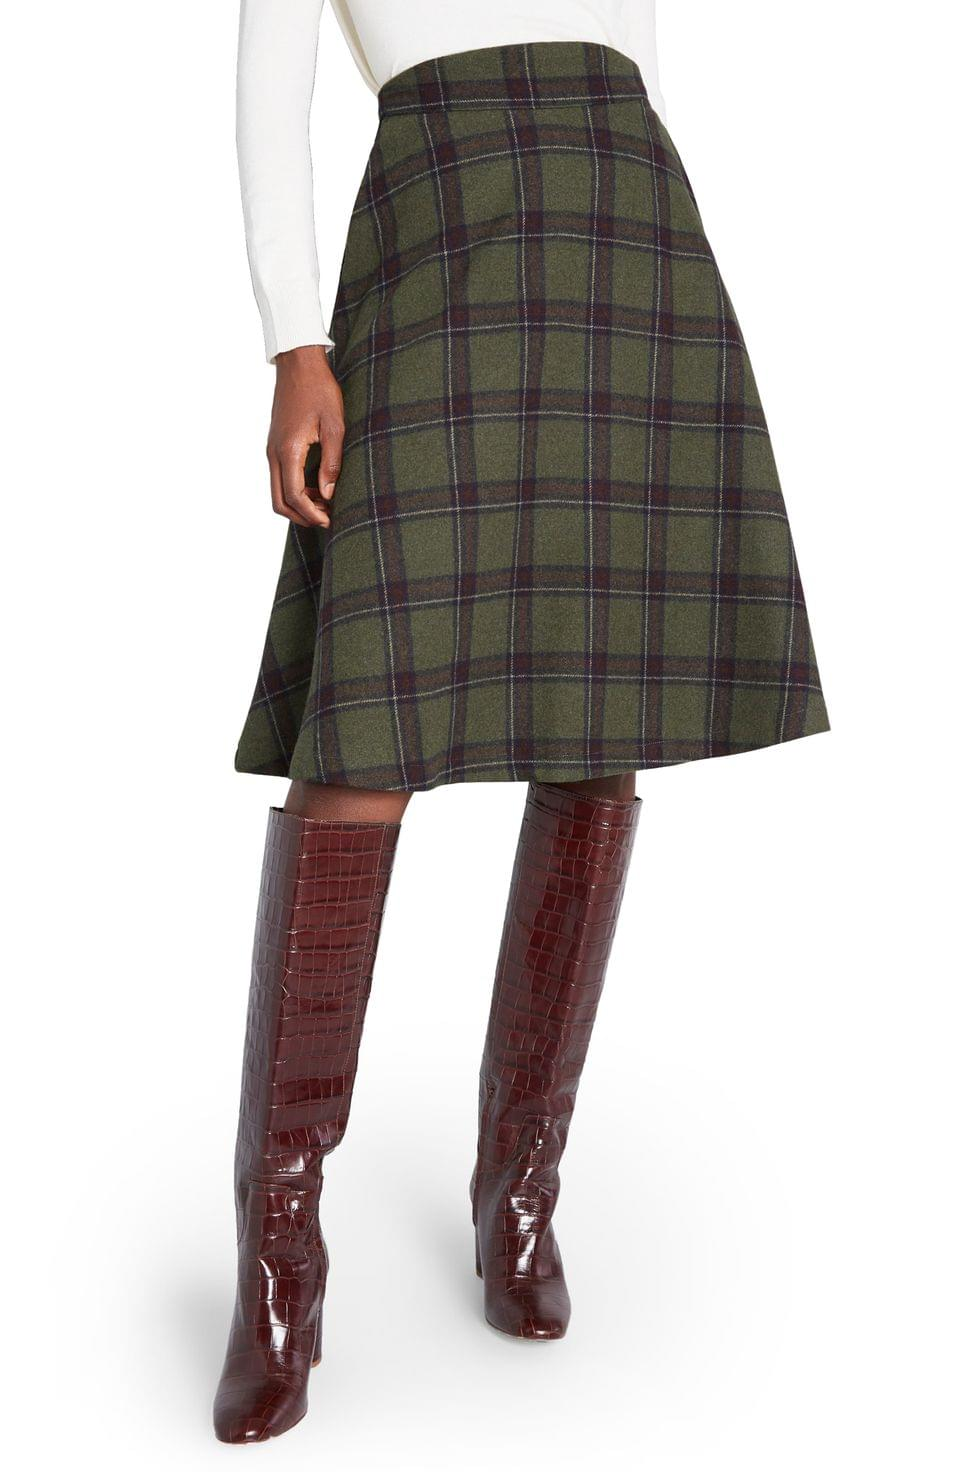 Women's ModCloth Prim Class Hero Plaid Skirt (Regular & Plus Size)